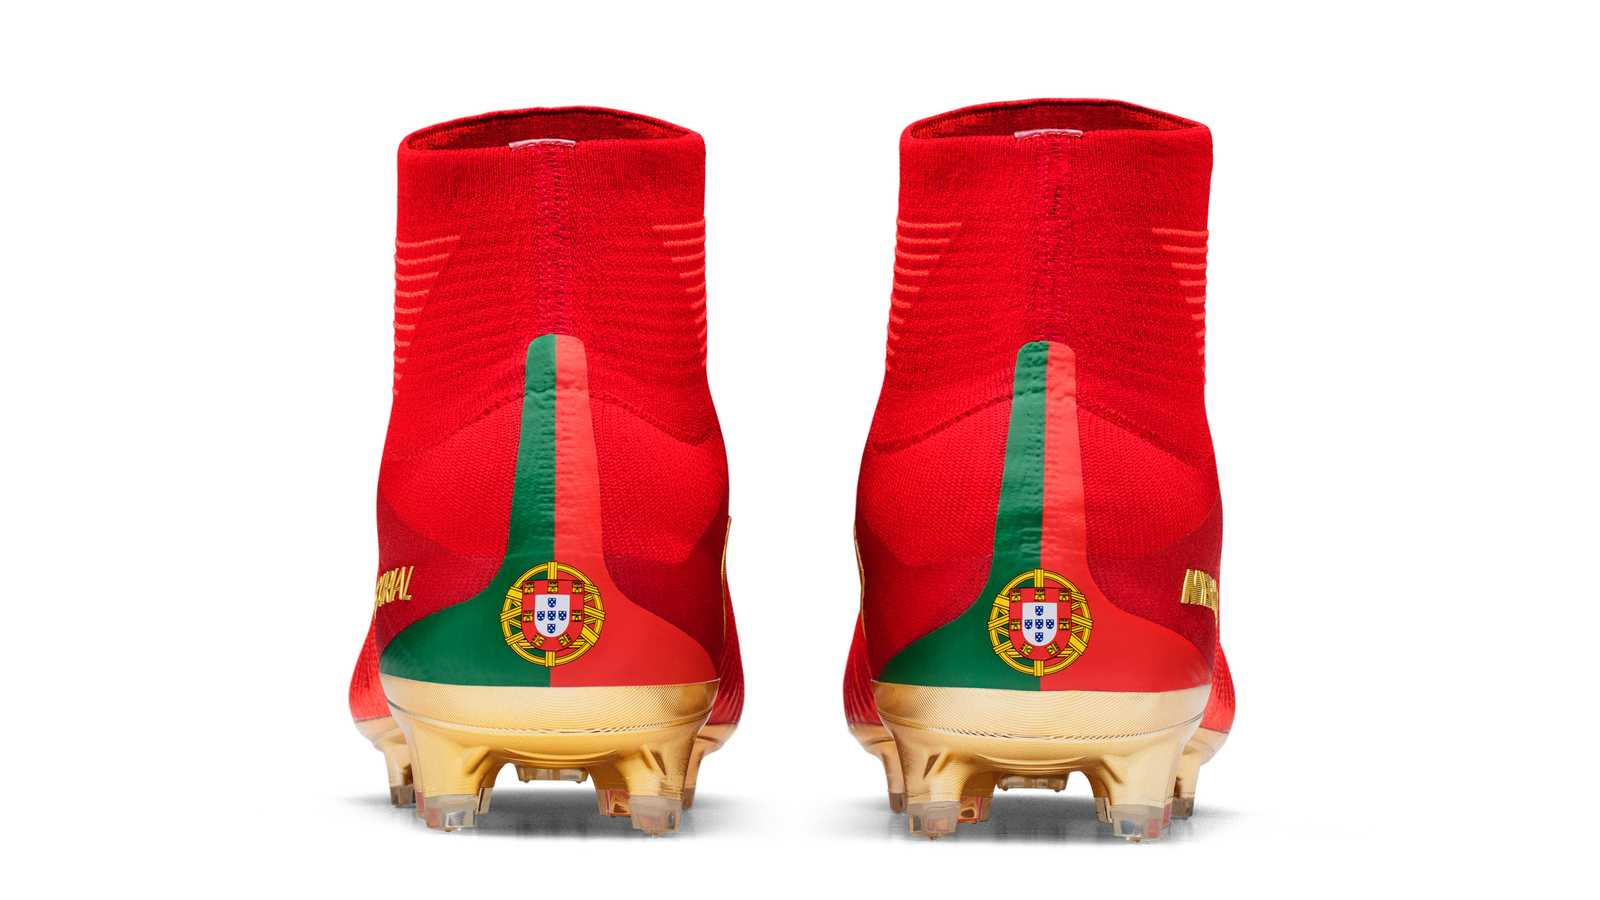 The Nike Mercurial Superfly CR7 Campeões soccer cleats will not be  available to buy - they are exclusive to the legend himself.